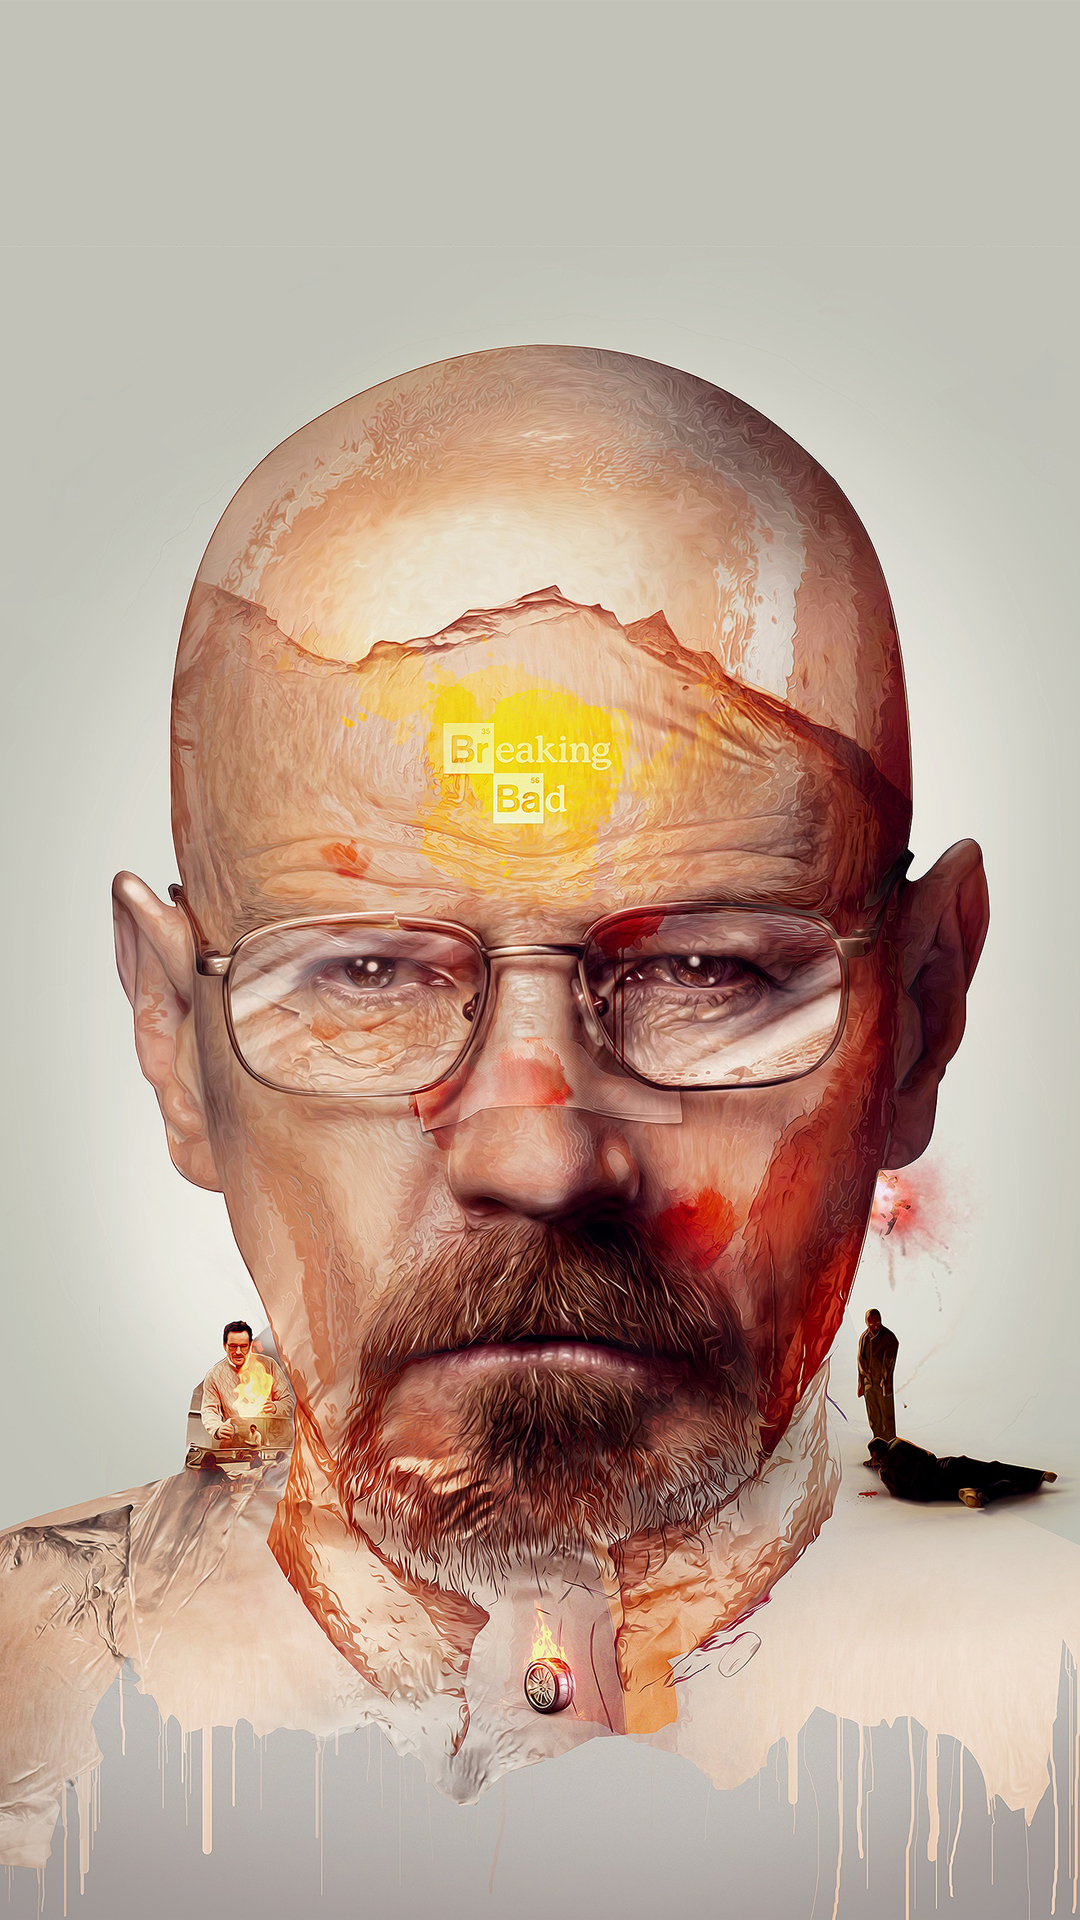 Heisenberg bwin Rugby-Streaming Quotes Breaking Bad Wallpaper